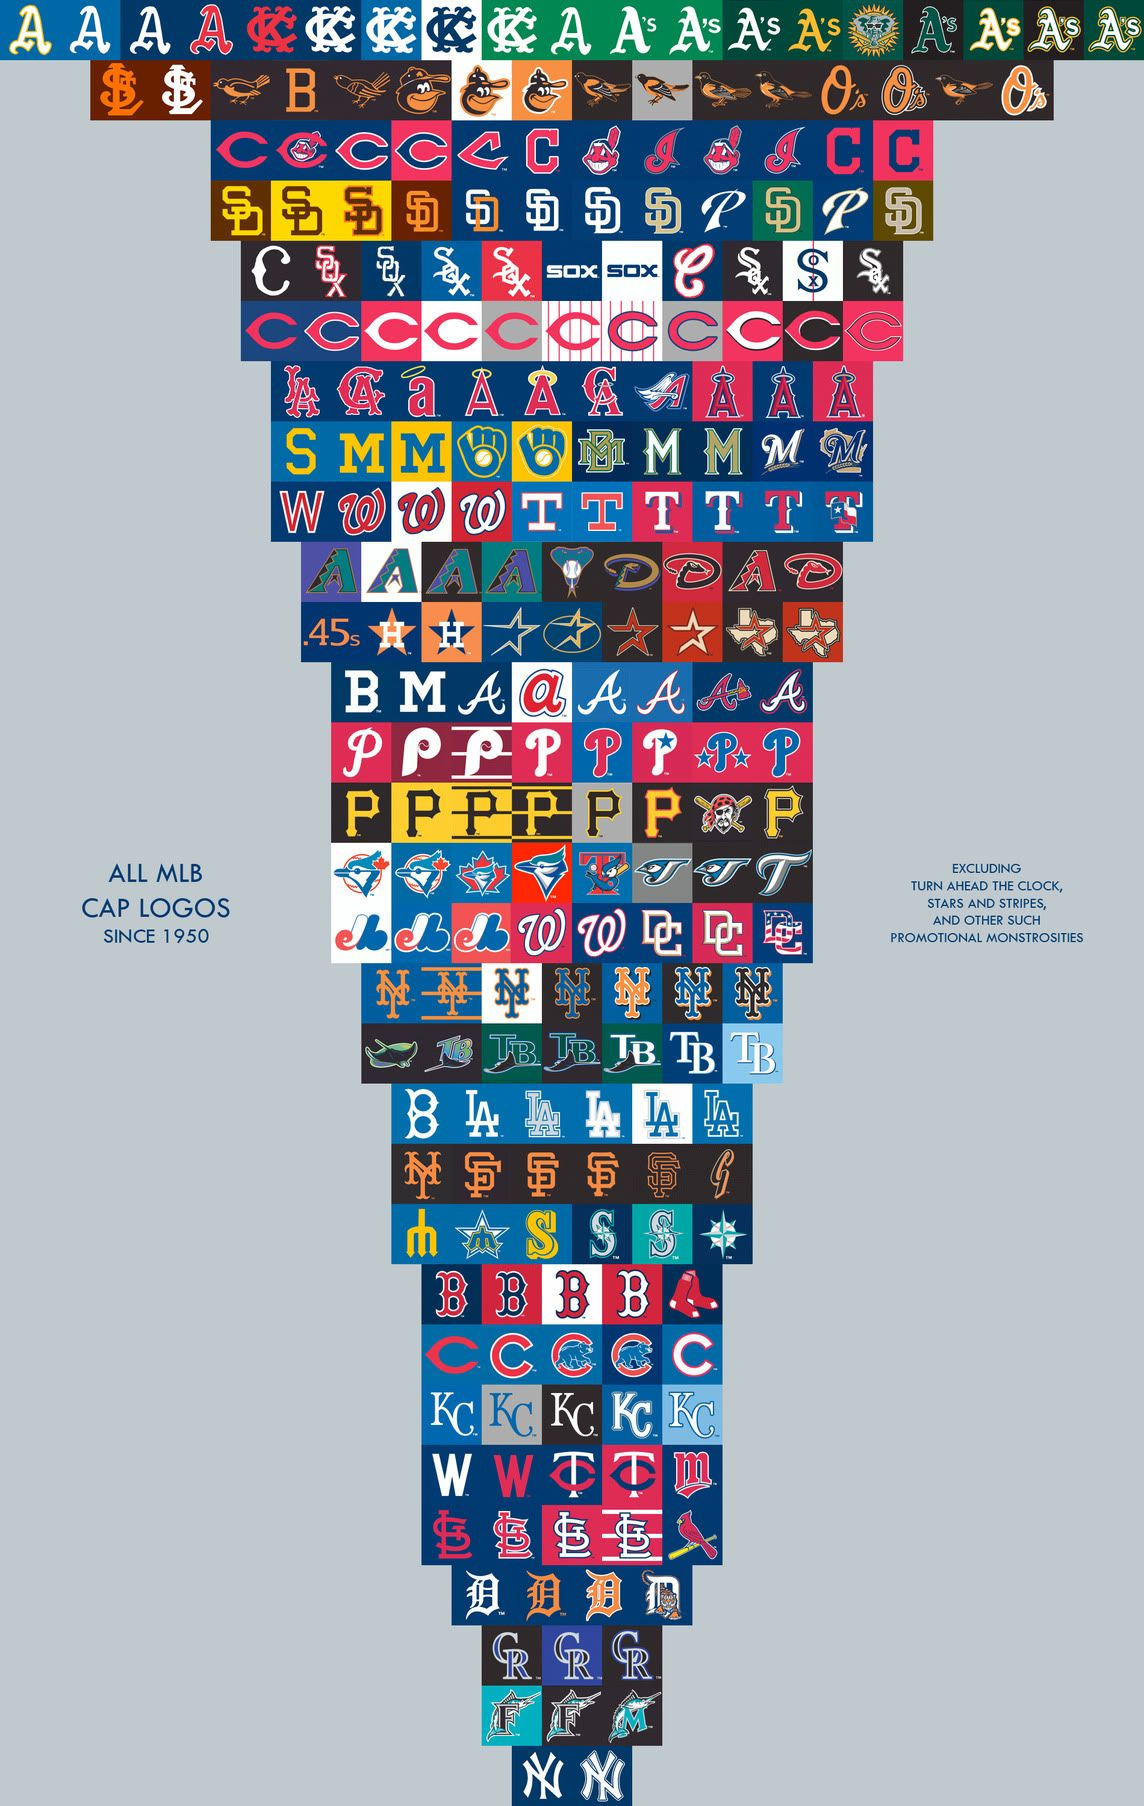 All the different permutations of every MLB logo over the years